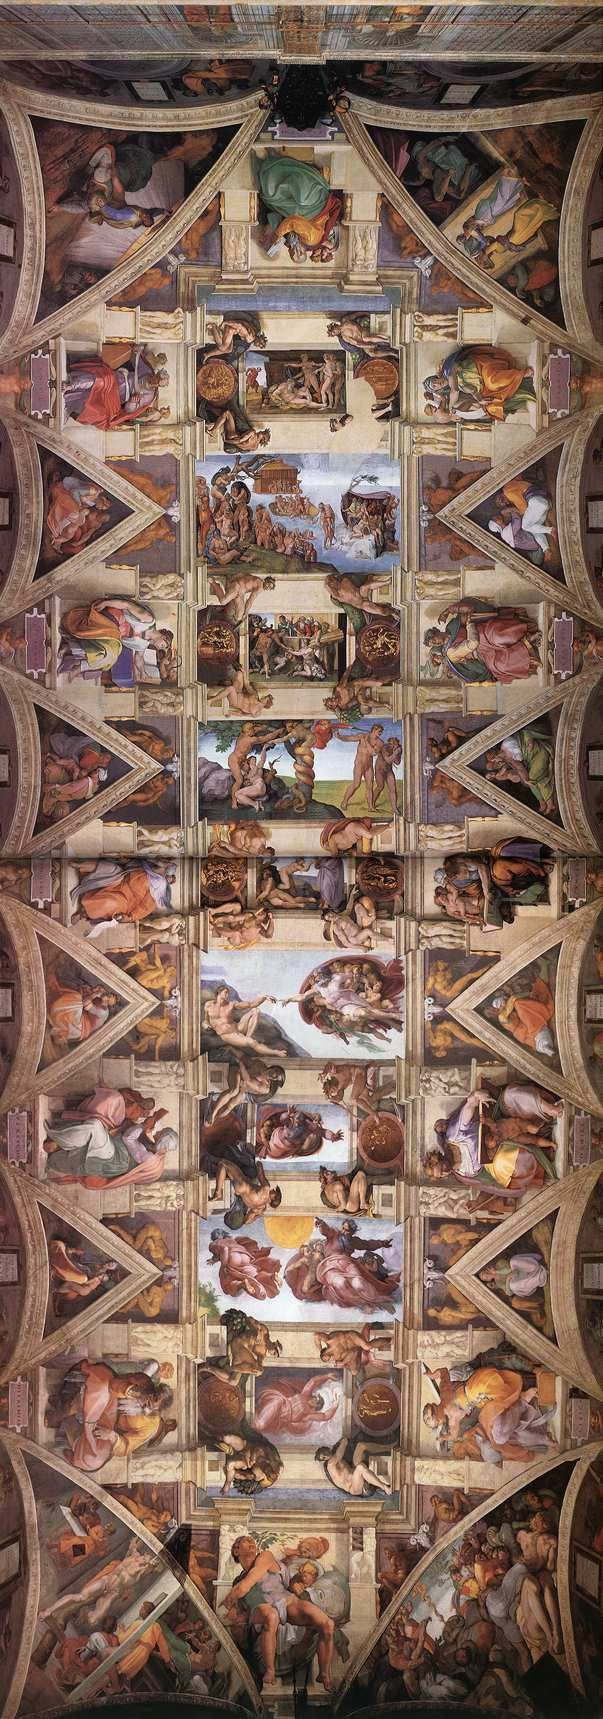 Ceiling of the Sistine Chapel, Michelangelo, 1508-1512